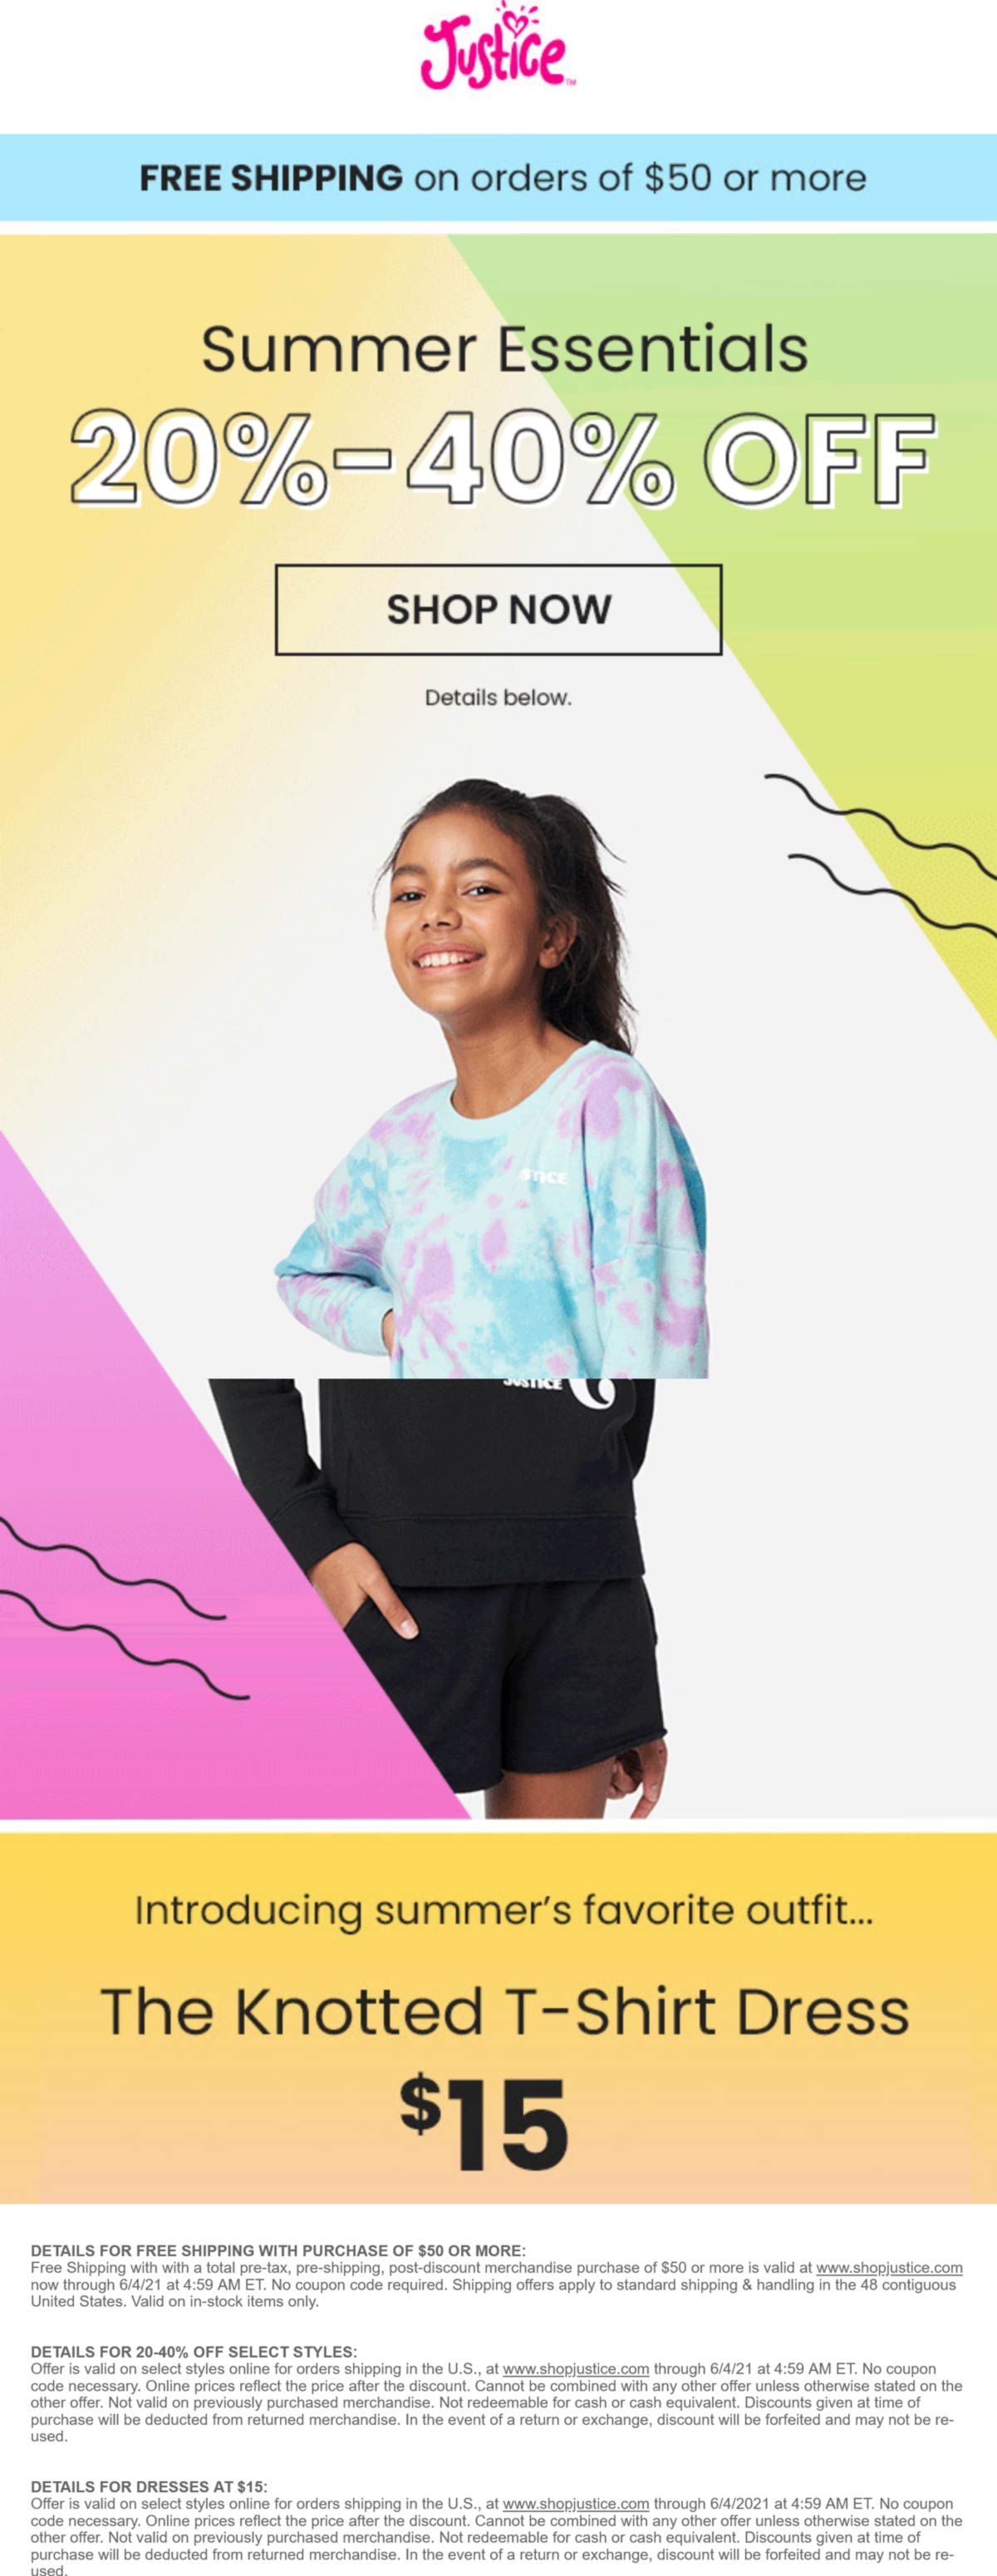 Justice stores Coupon  20-40% off Summer at Justice #justice